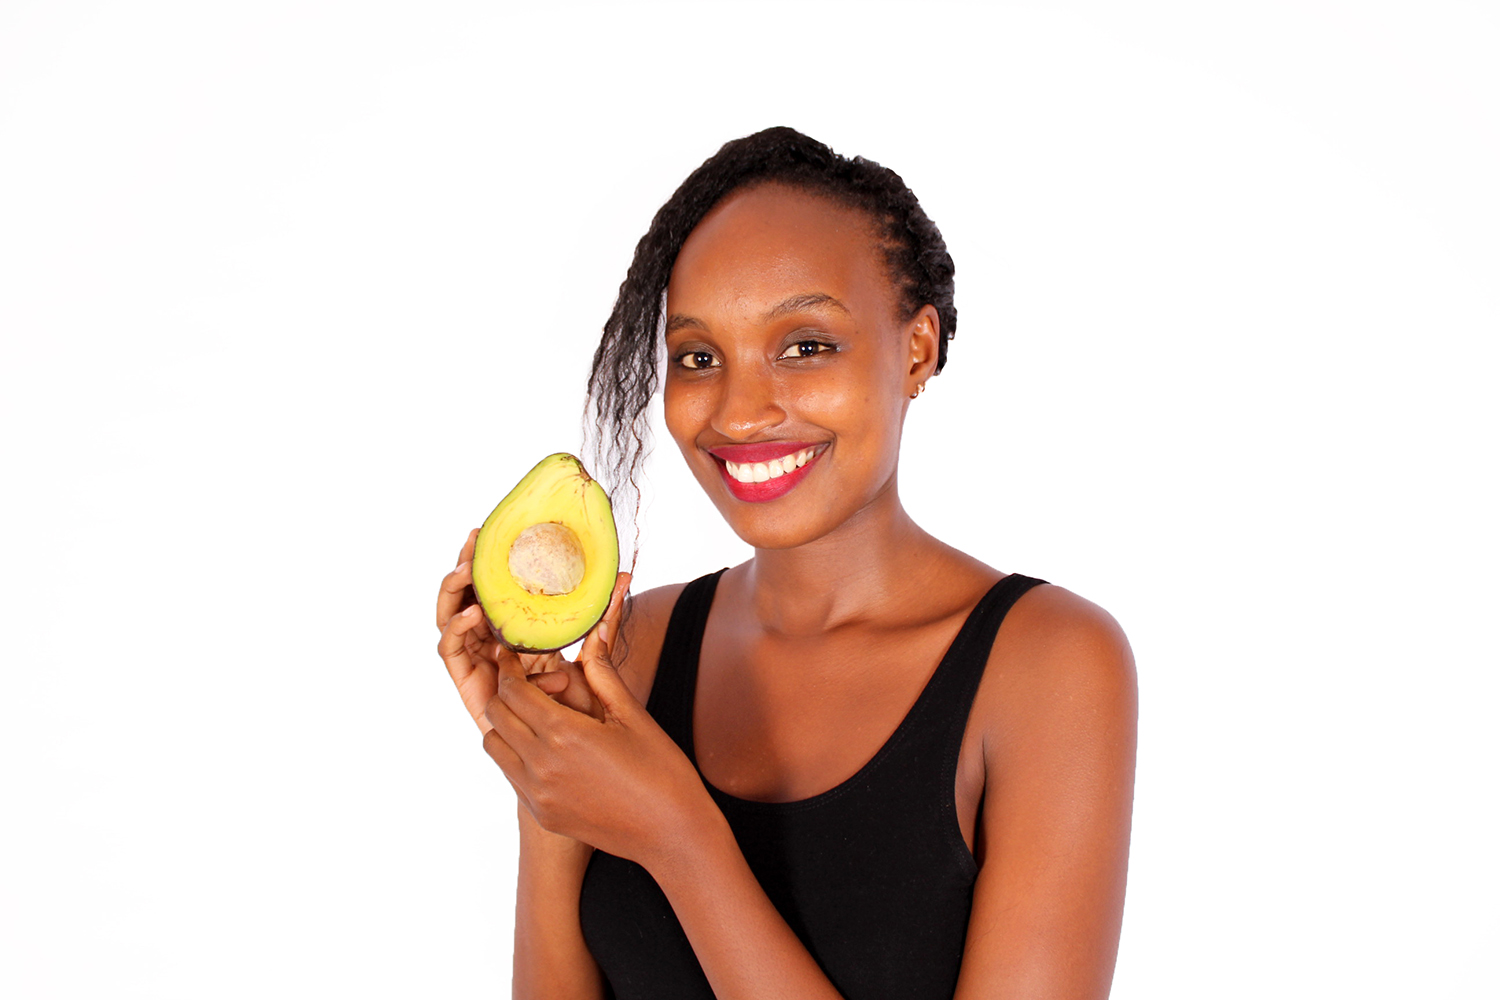 African woman holding half avocado slice